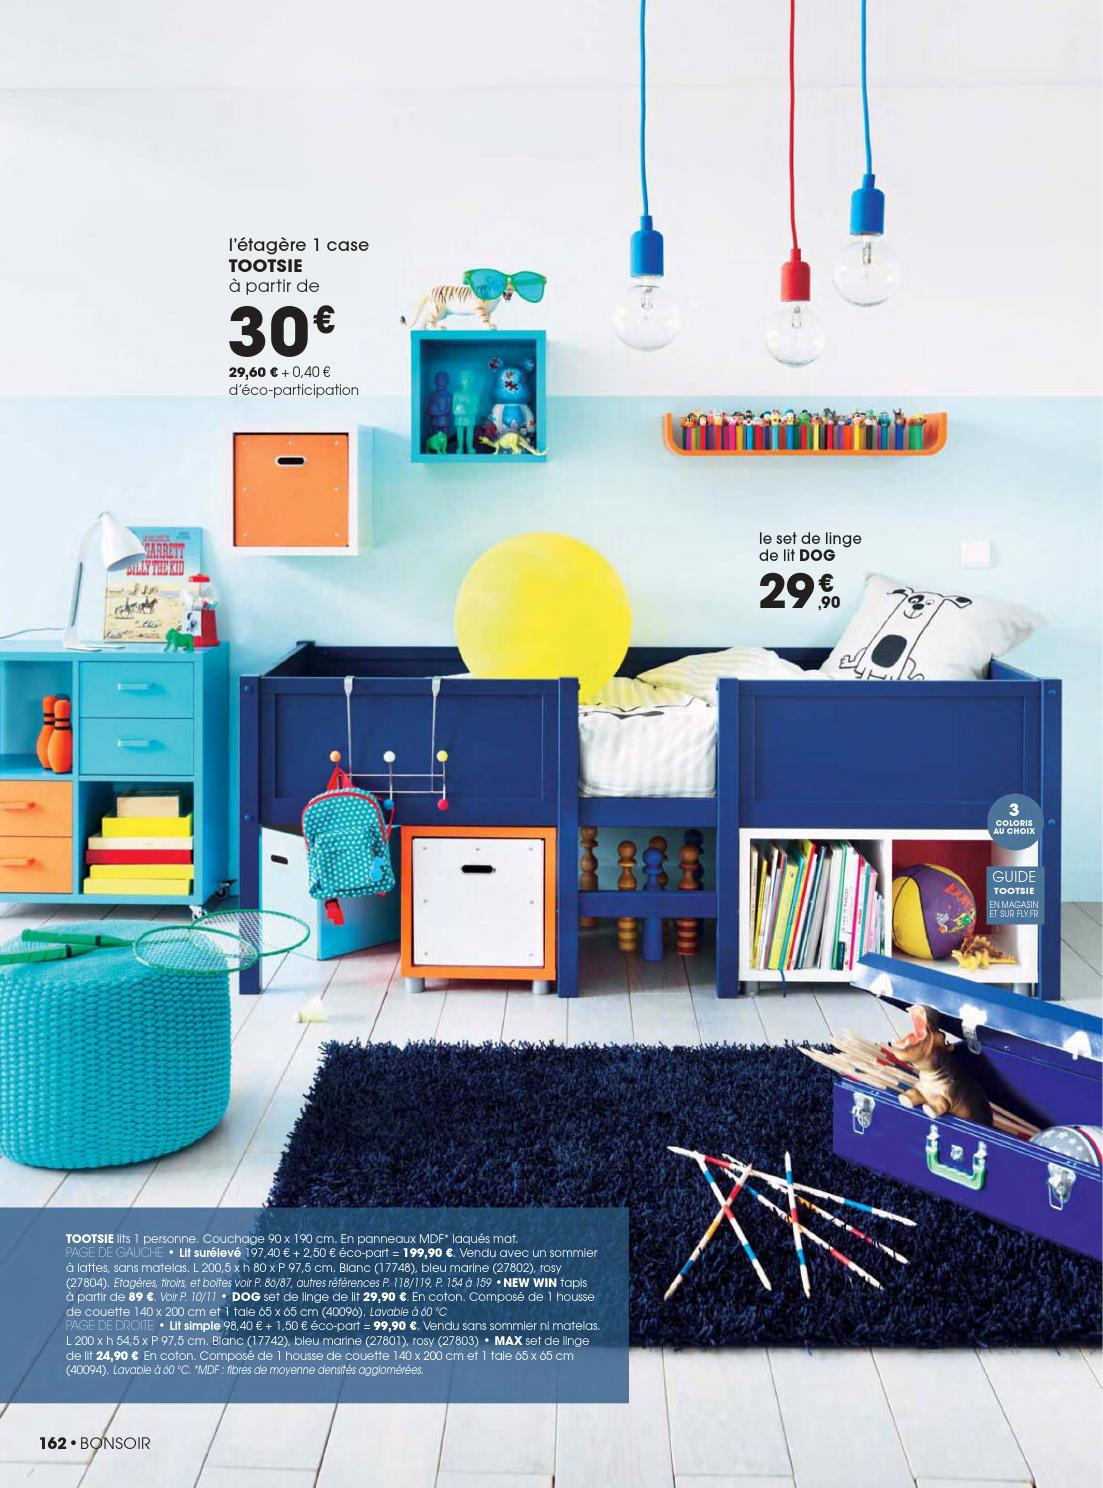 Etagere Fly Tootsie Catalogue Fly Collection 2013 2014